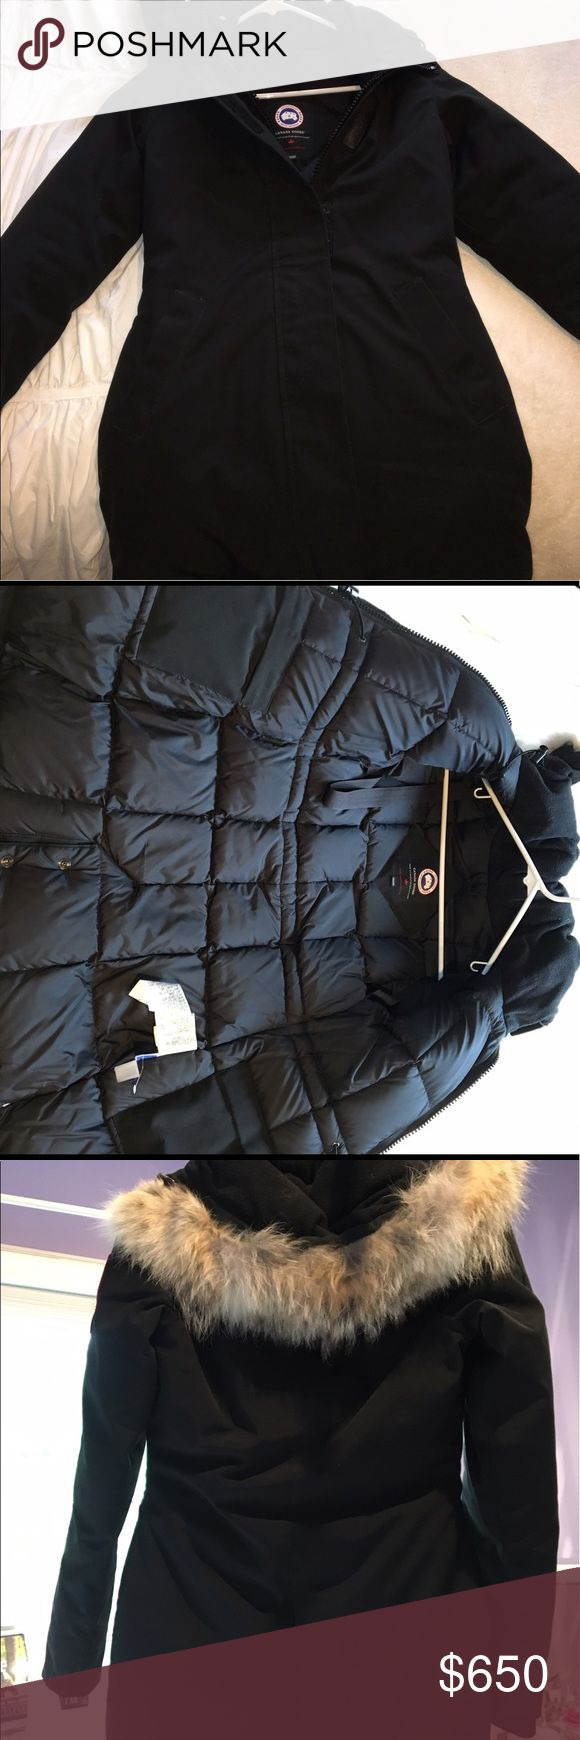 Canada Goose Victoria Parka XXS Victoria parka. In like-new condition. Size: XXS. Genuine coyote fur fleece hood. Fully functioning zipper and Velcro front. 100% authentic. Canada Goose Jackets & Coats Puffers